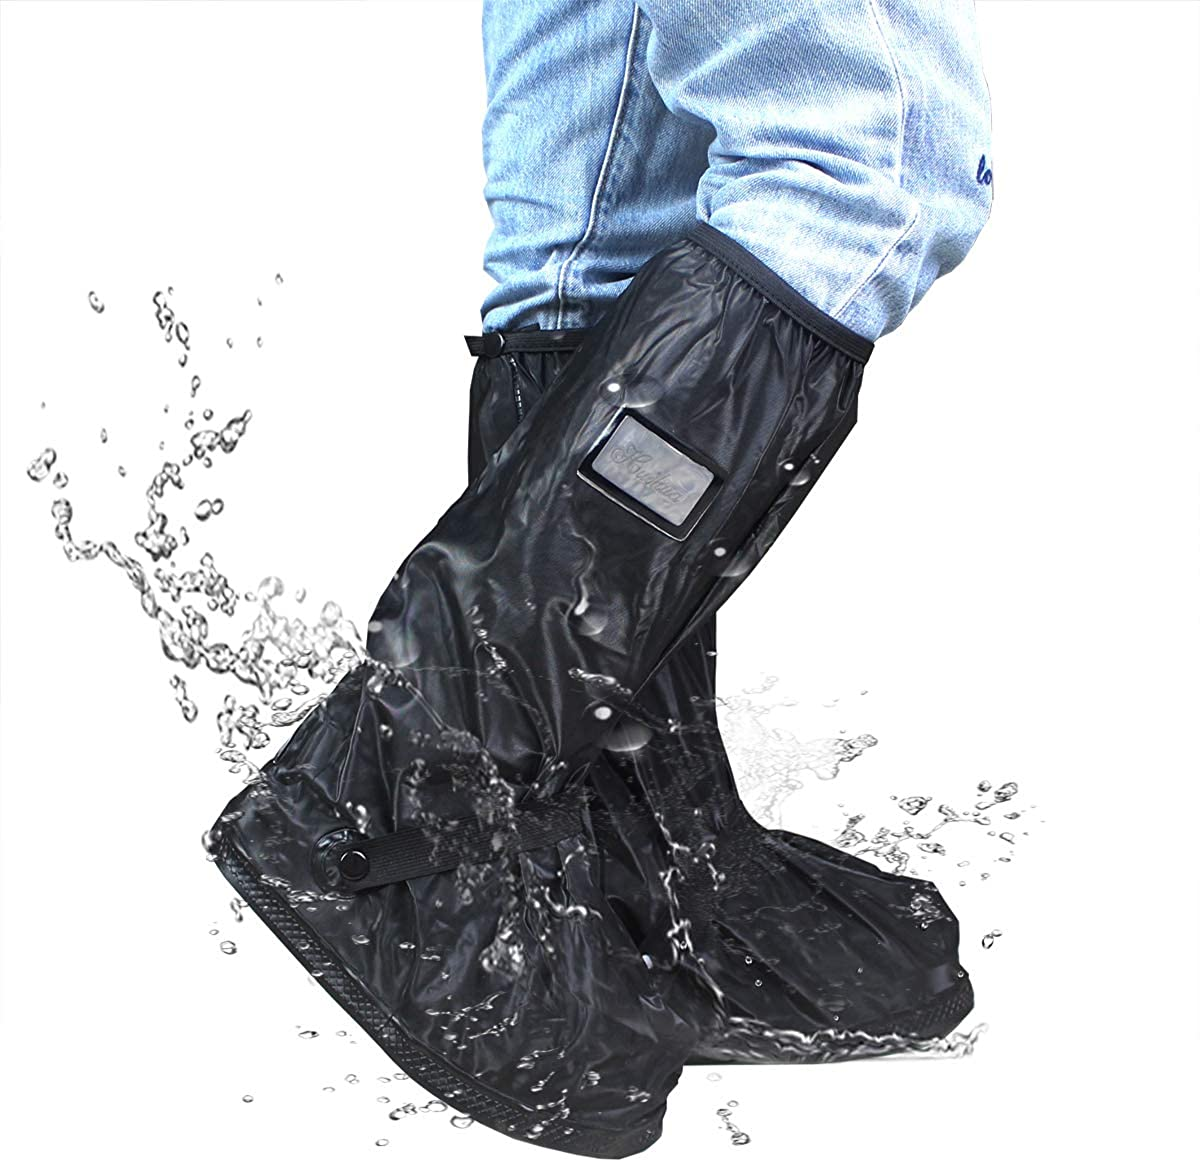 Frelaxy Waterproof Rain Boot Shoe Cover S~XXL Reusable & Foldable Rain Boots, Rain Snow Gear for Cycling Motorcycle Fishing Men Women Kids (1 Pair)